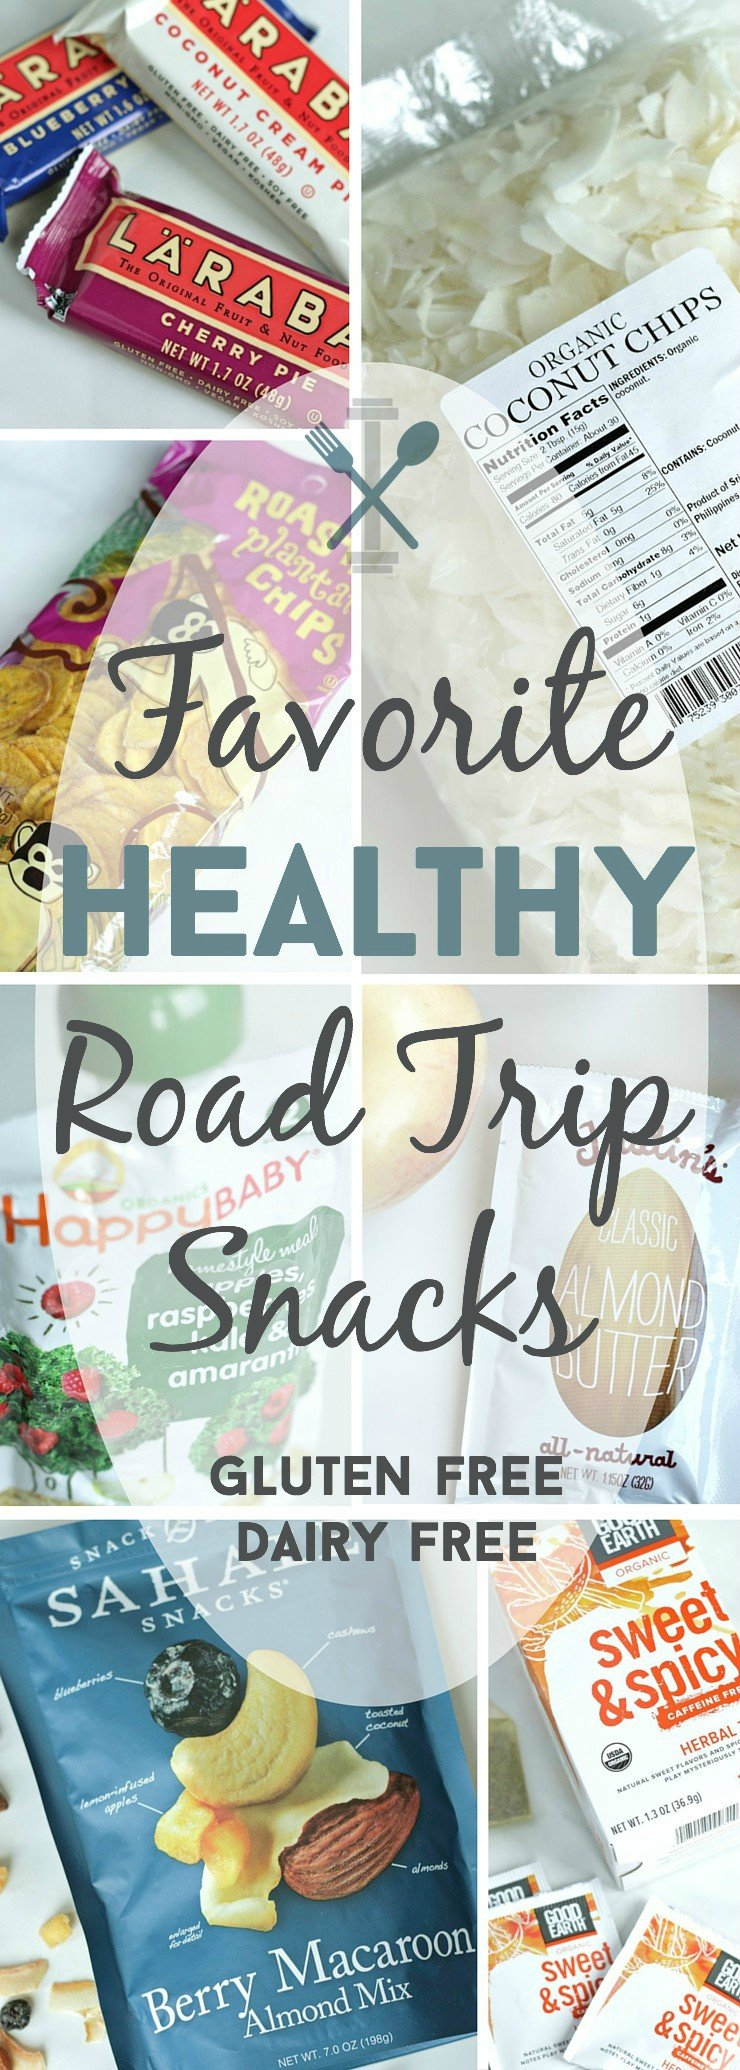 The ultimate gluten-free, dairy-free, and vegan list for healthy road trip snacks!